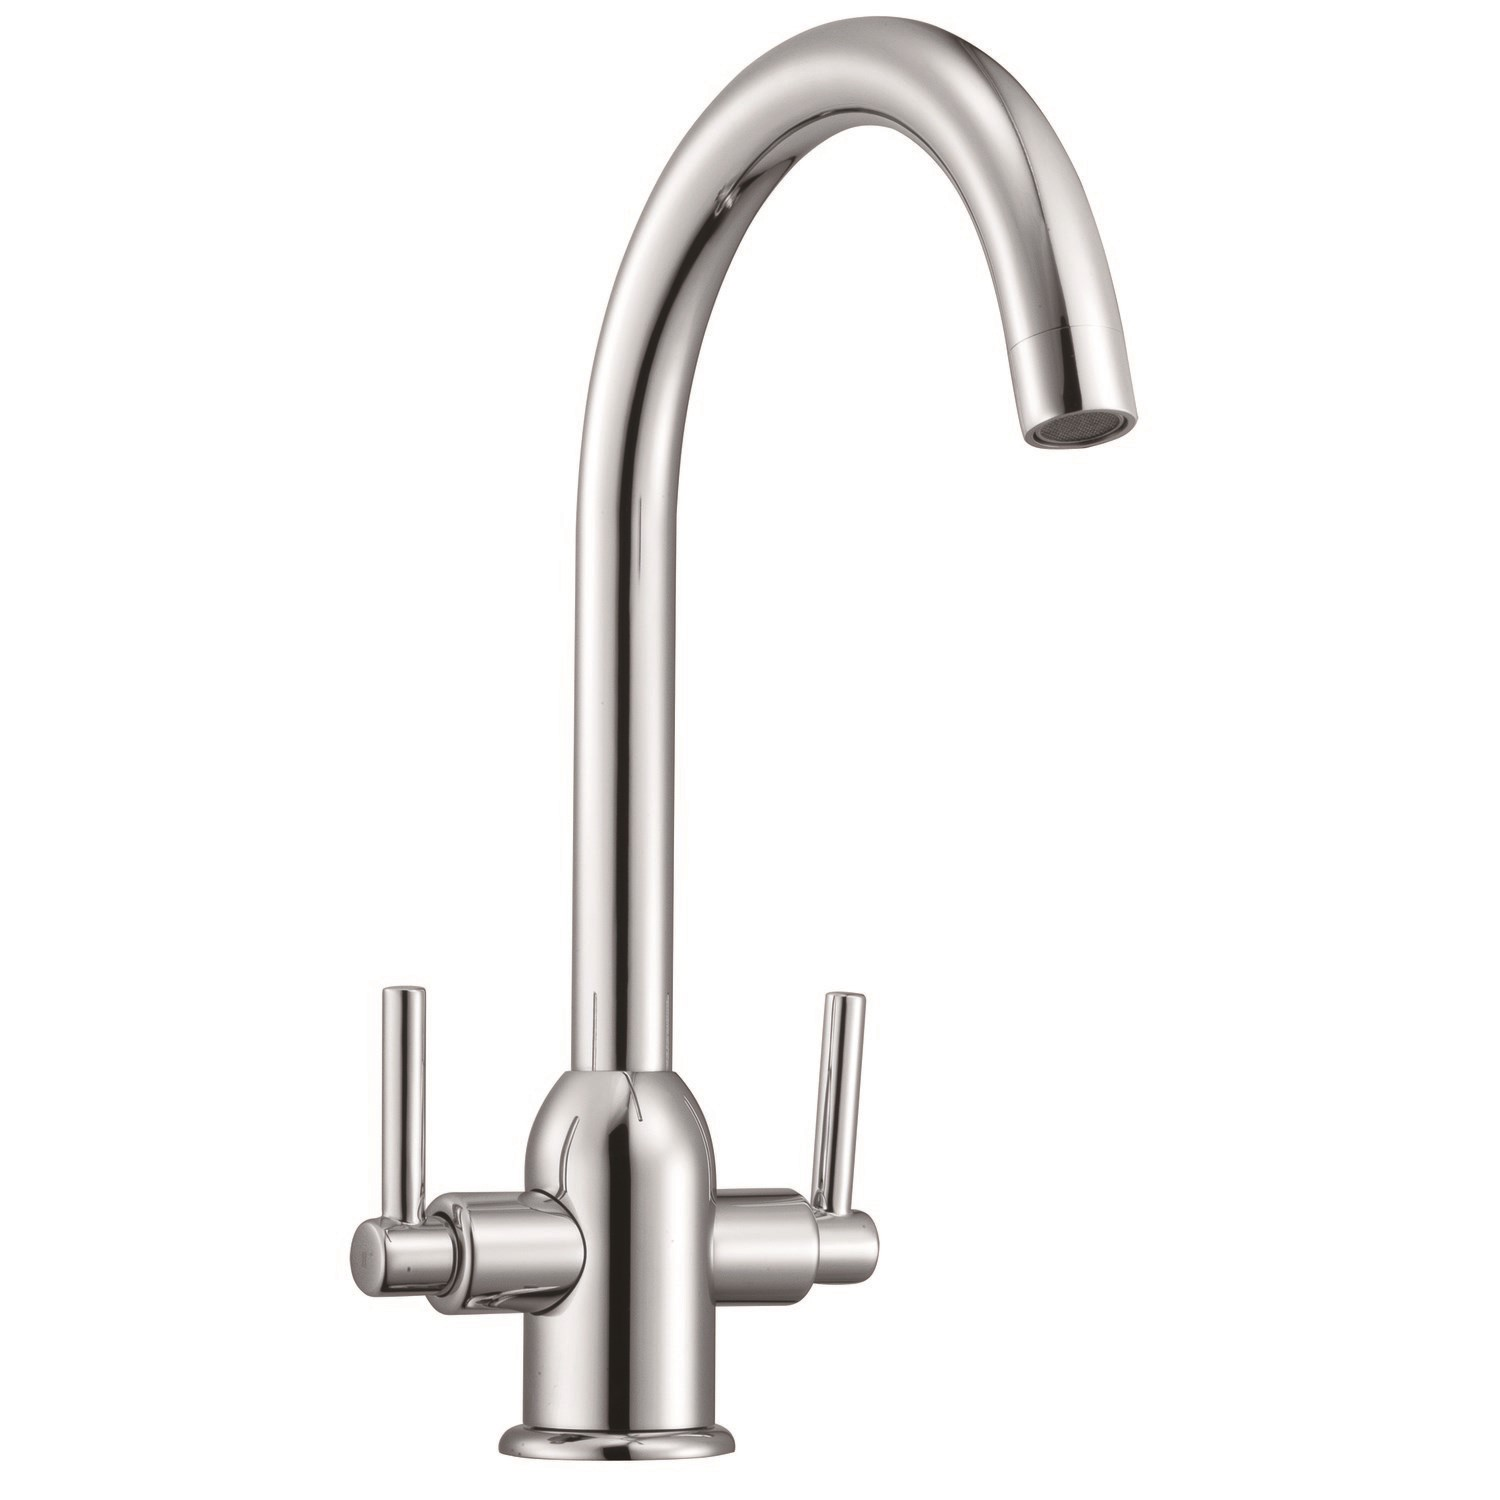 Plumbing Tools Taylor & Moore Dual Lever Kitchen Sink Tap - Chrome